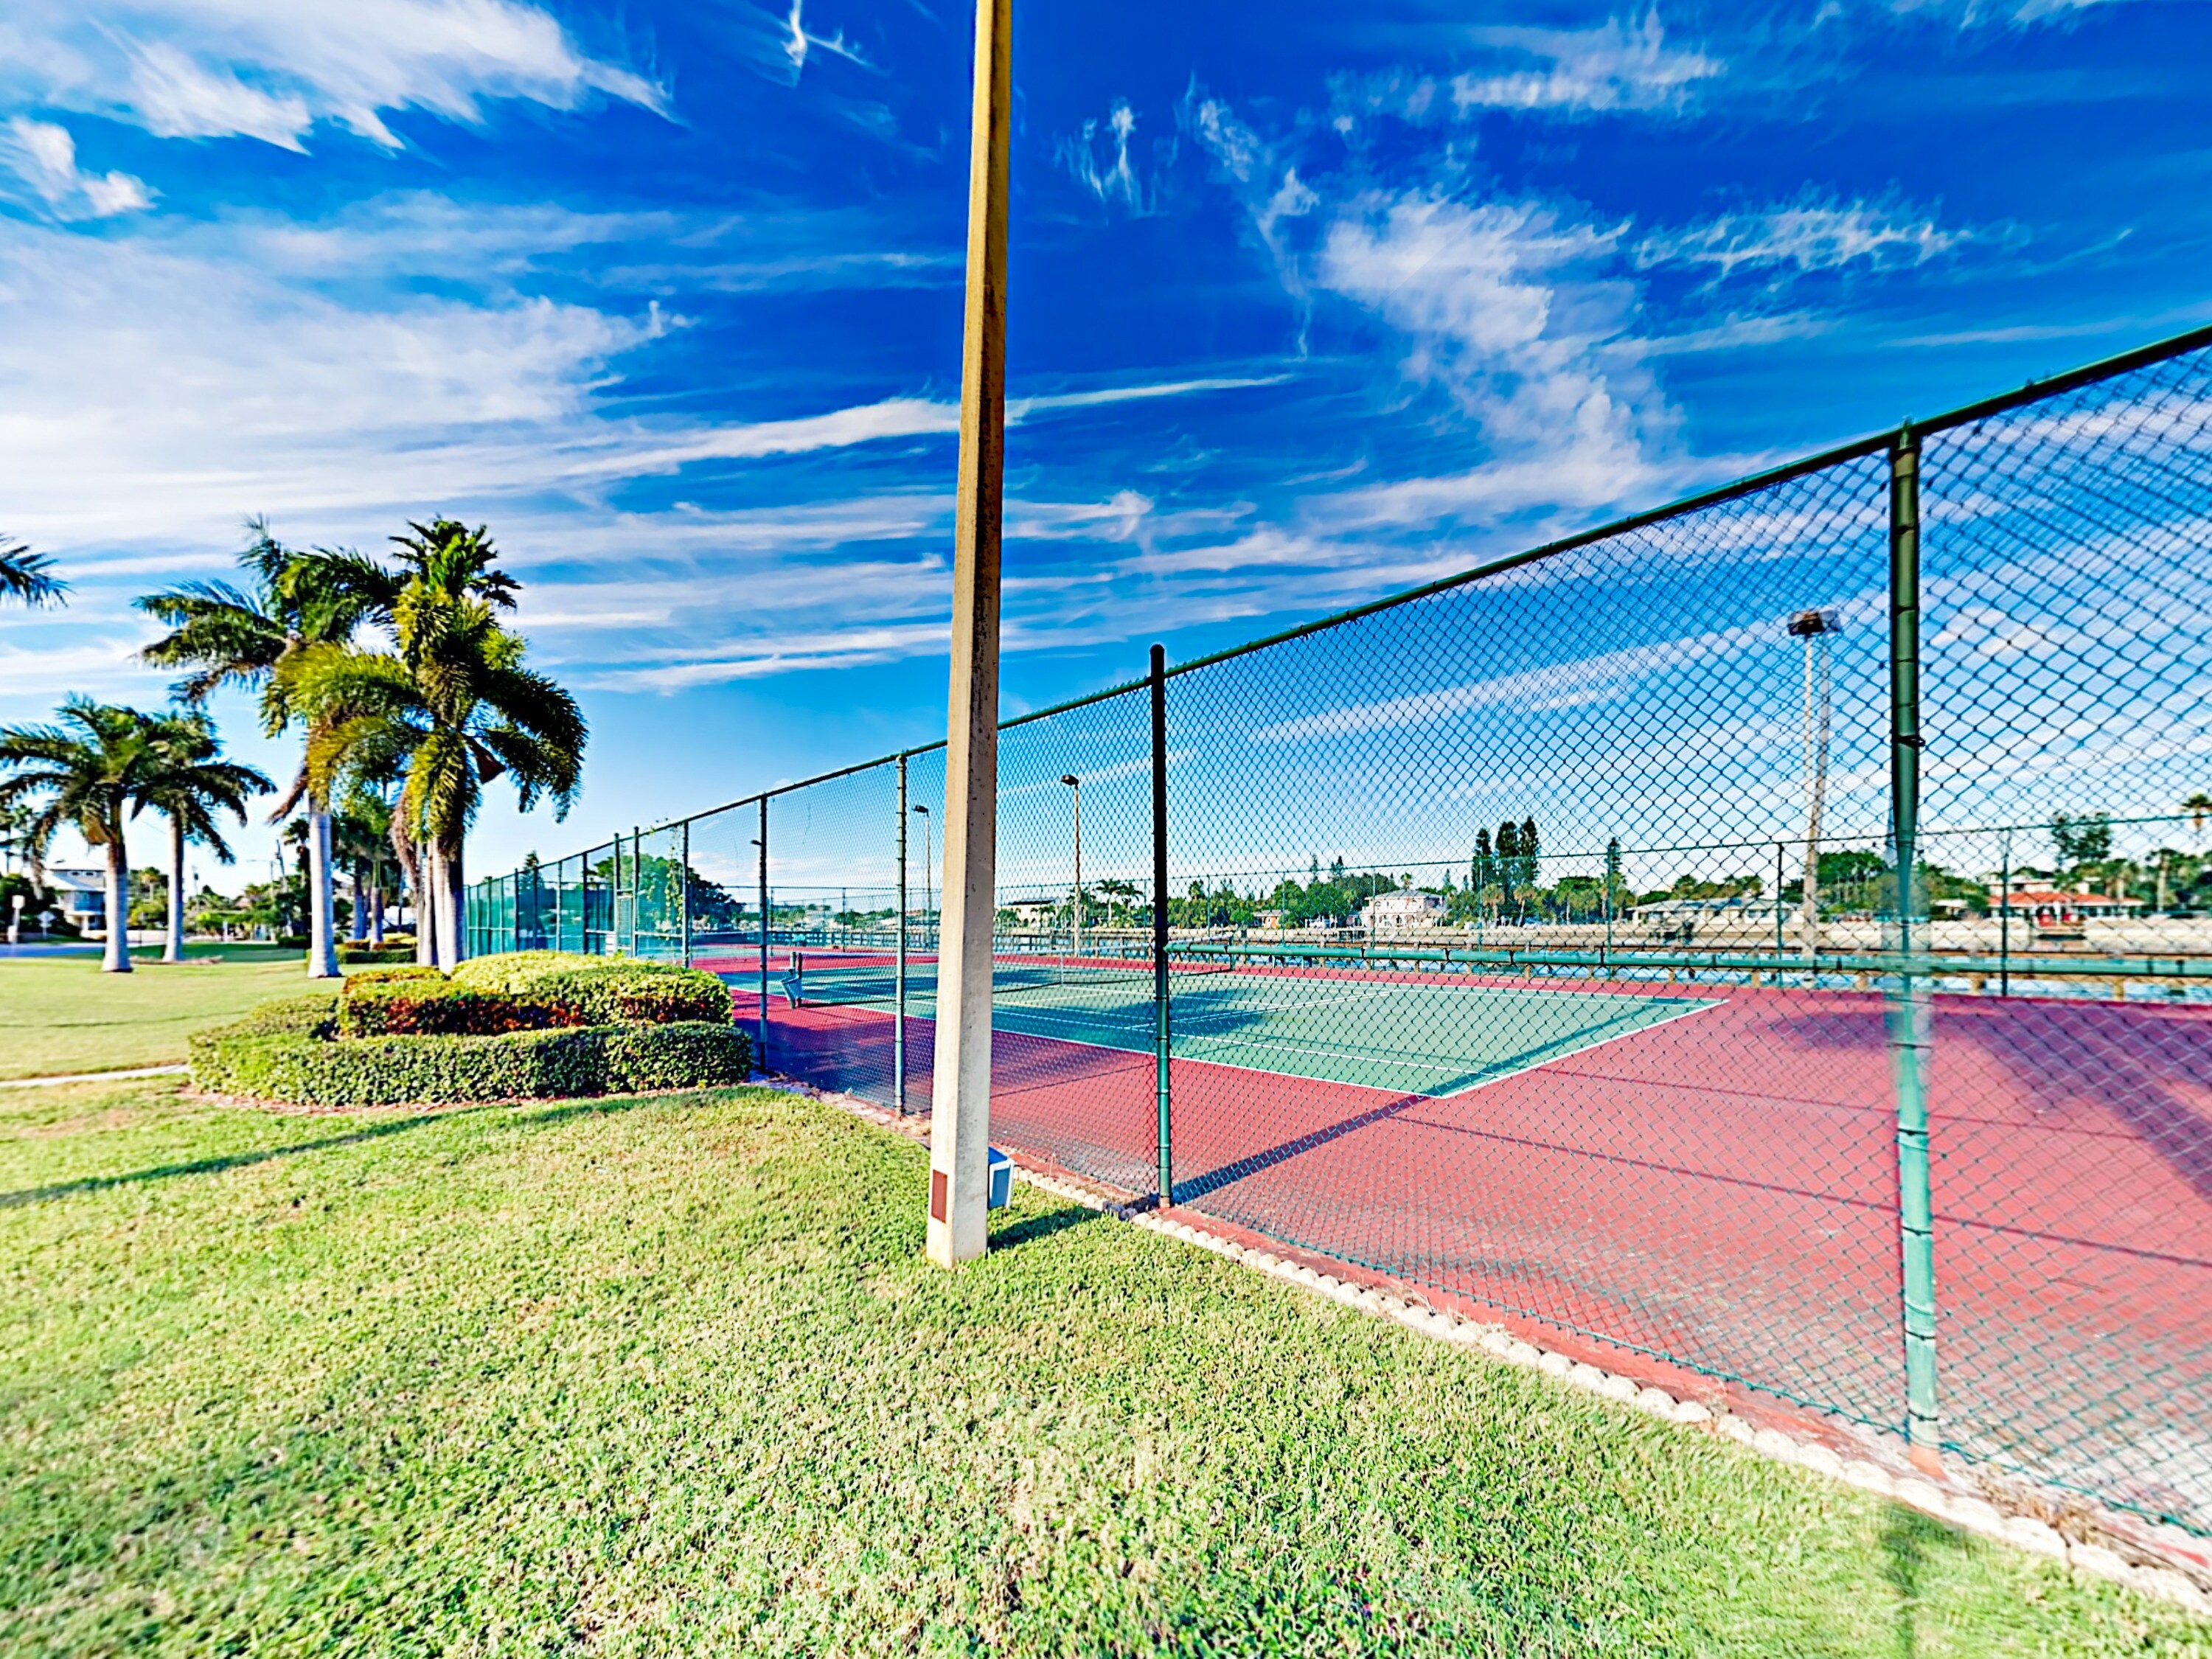 Practice your serve at the on-site tennis courts.